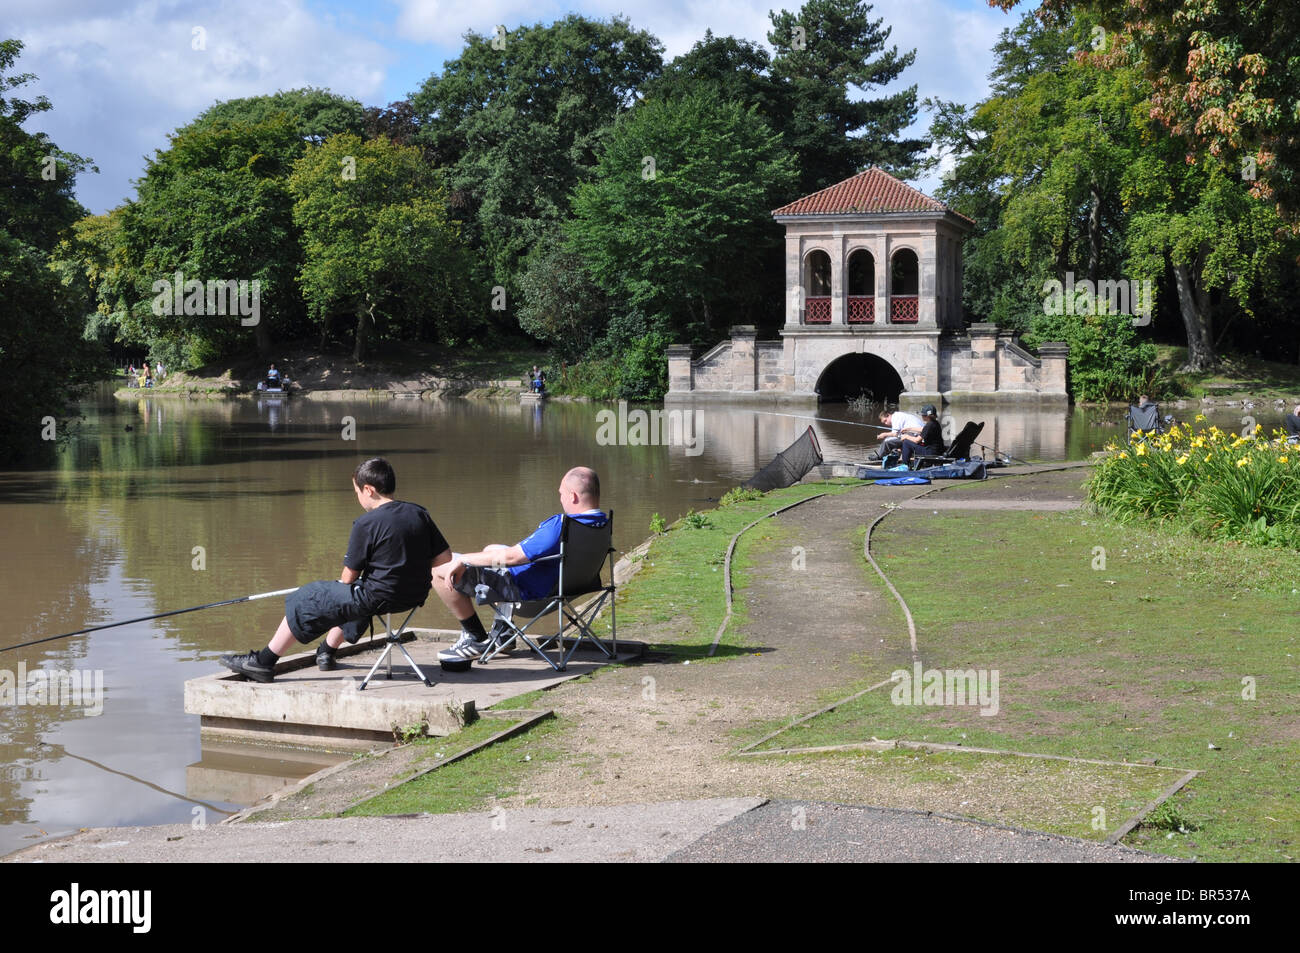 Fishing by the Birkenhead Park boathouse - Stock Image